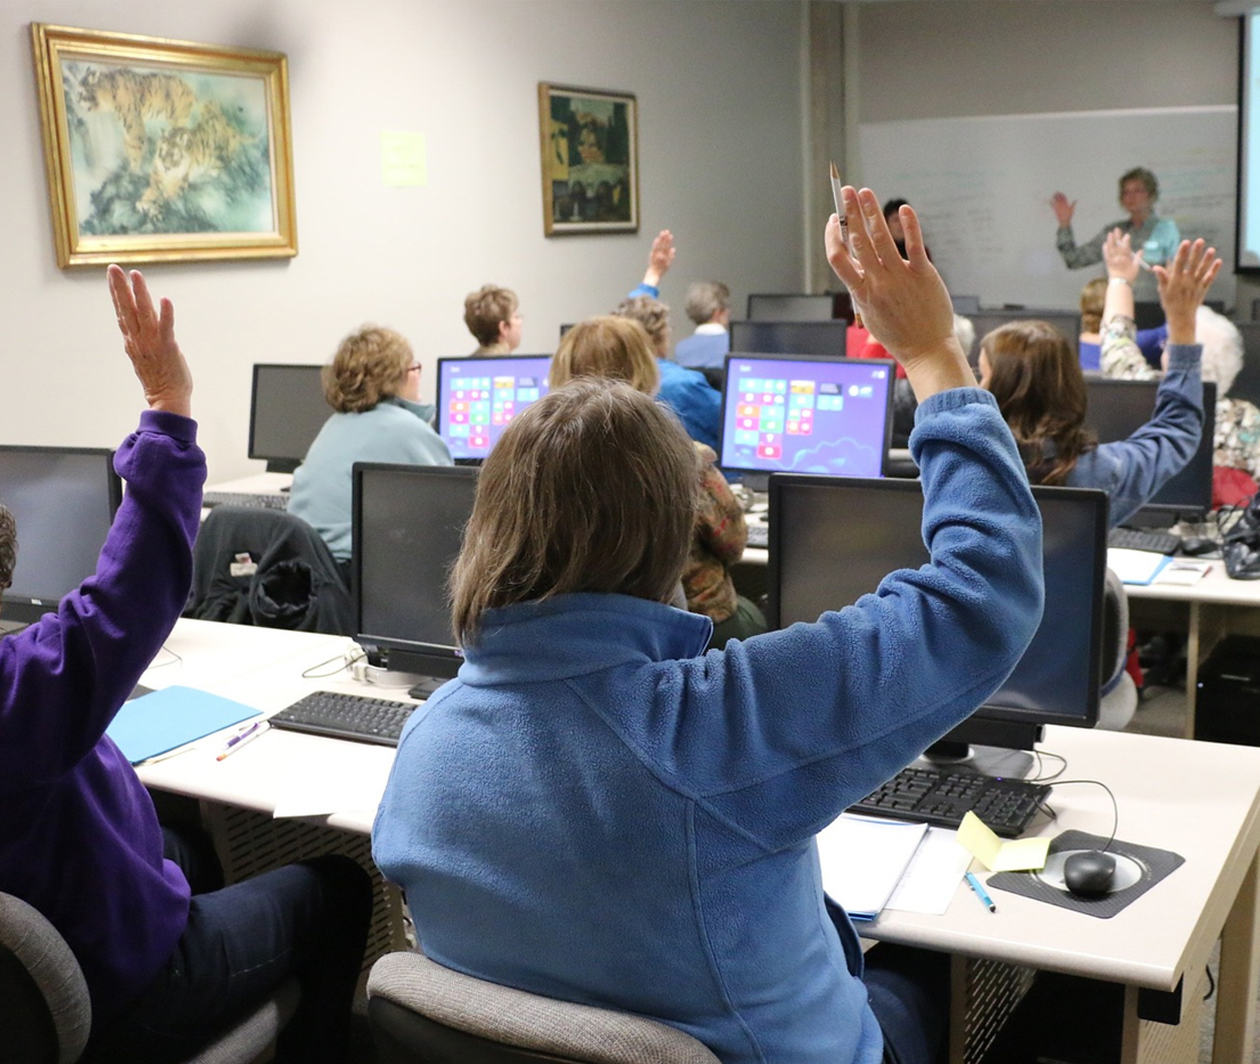 Digital Transformation in the Classroom